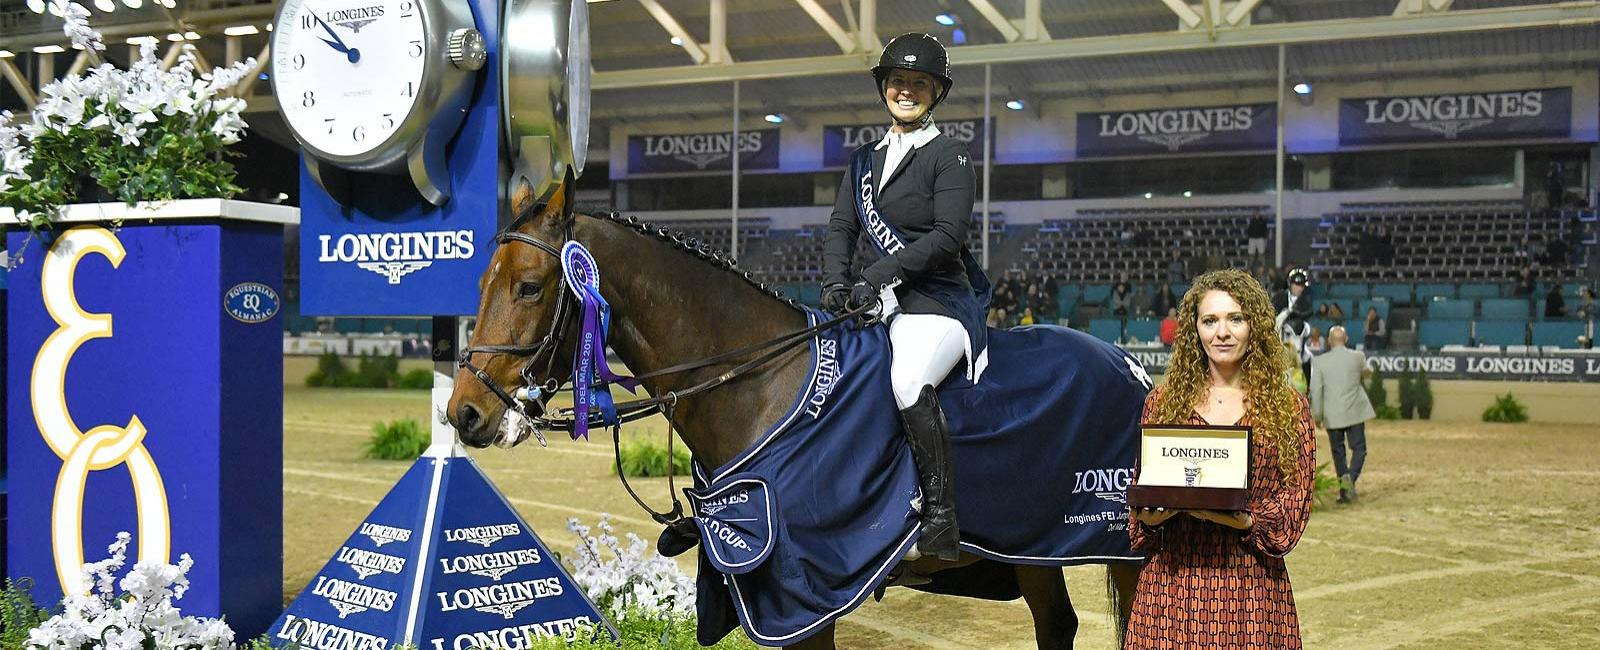 Longines FEI Jumping World Cup North American League - Del Mar; Saut d'obstacles; 2019